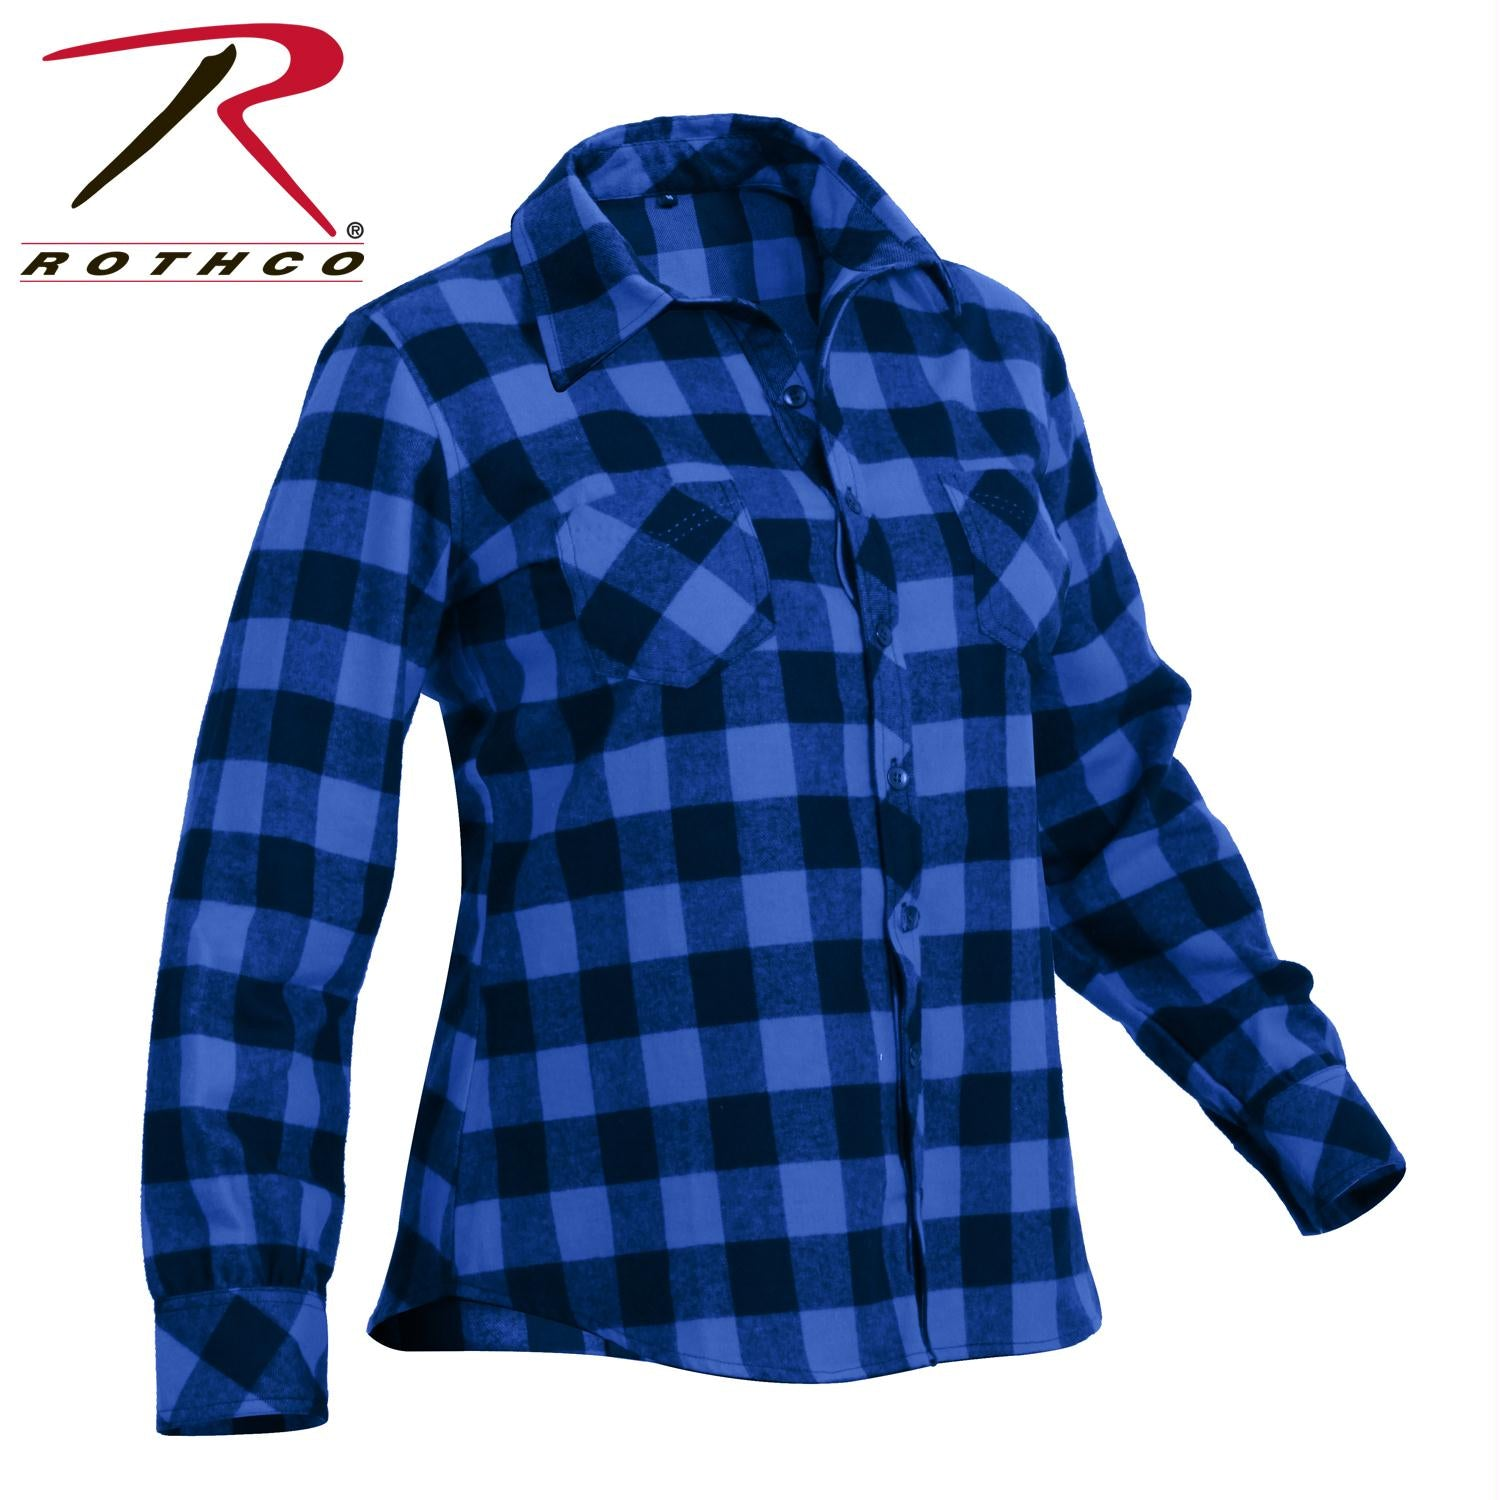 Rothco Womens Plaid Flannel Shirt - Blue / Black / XS